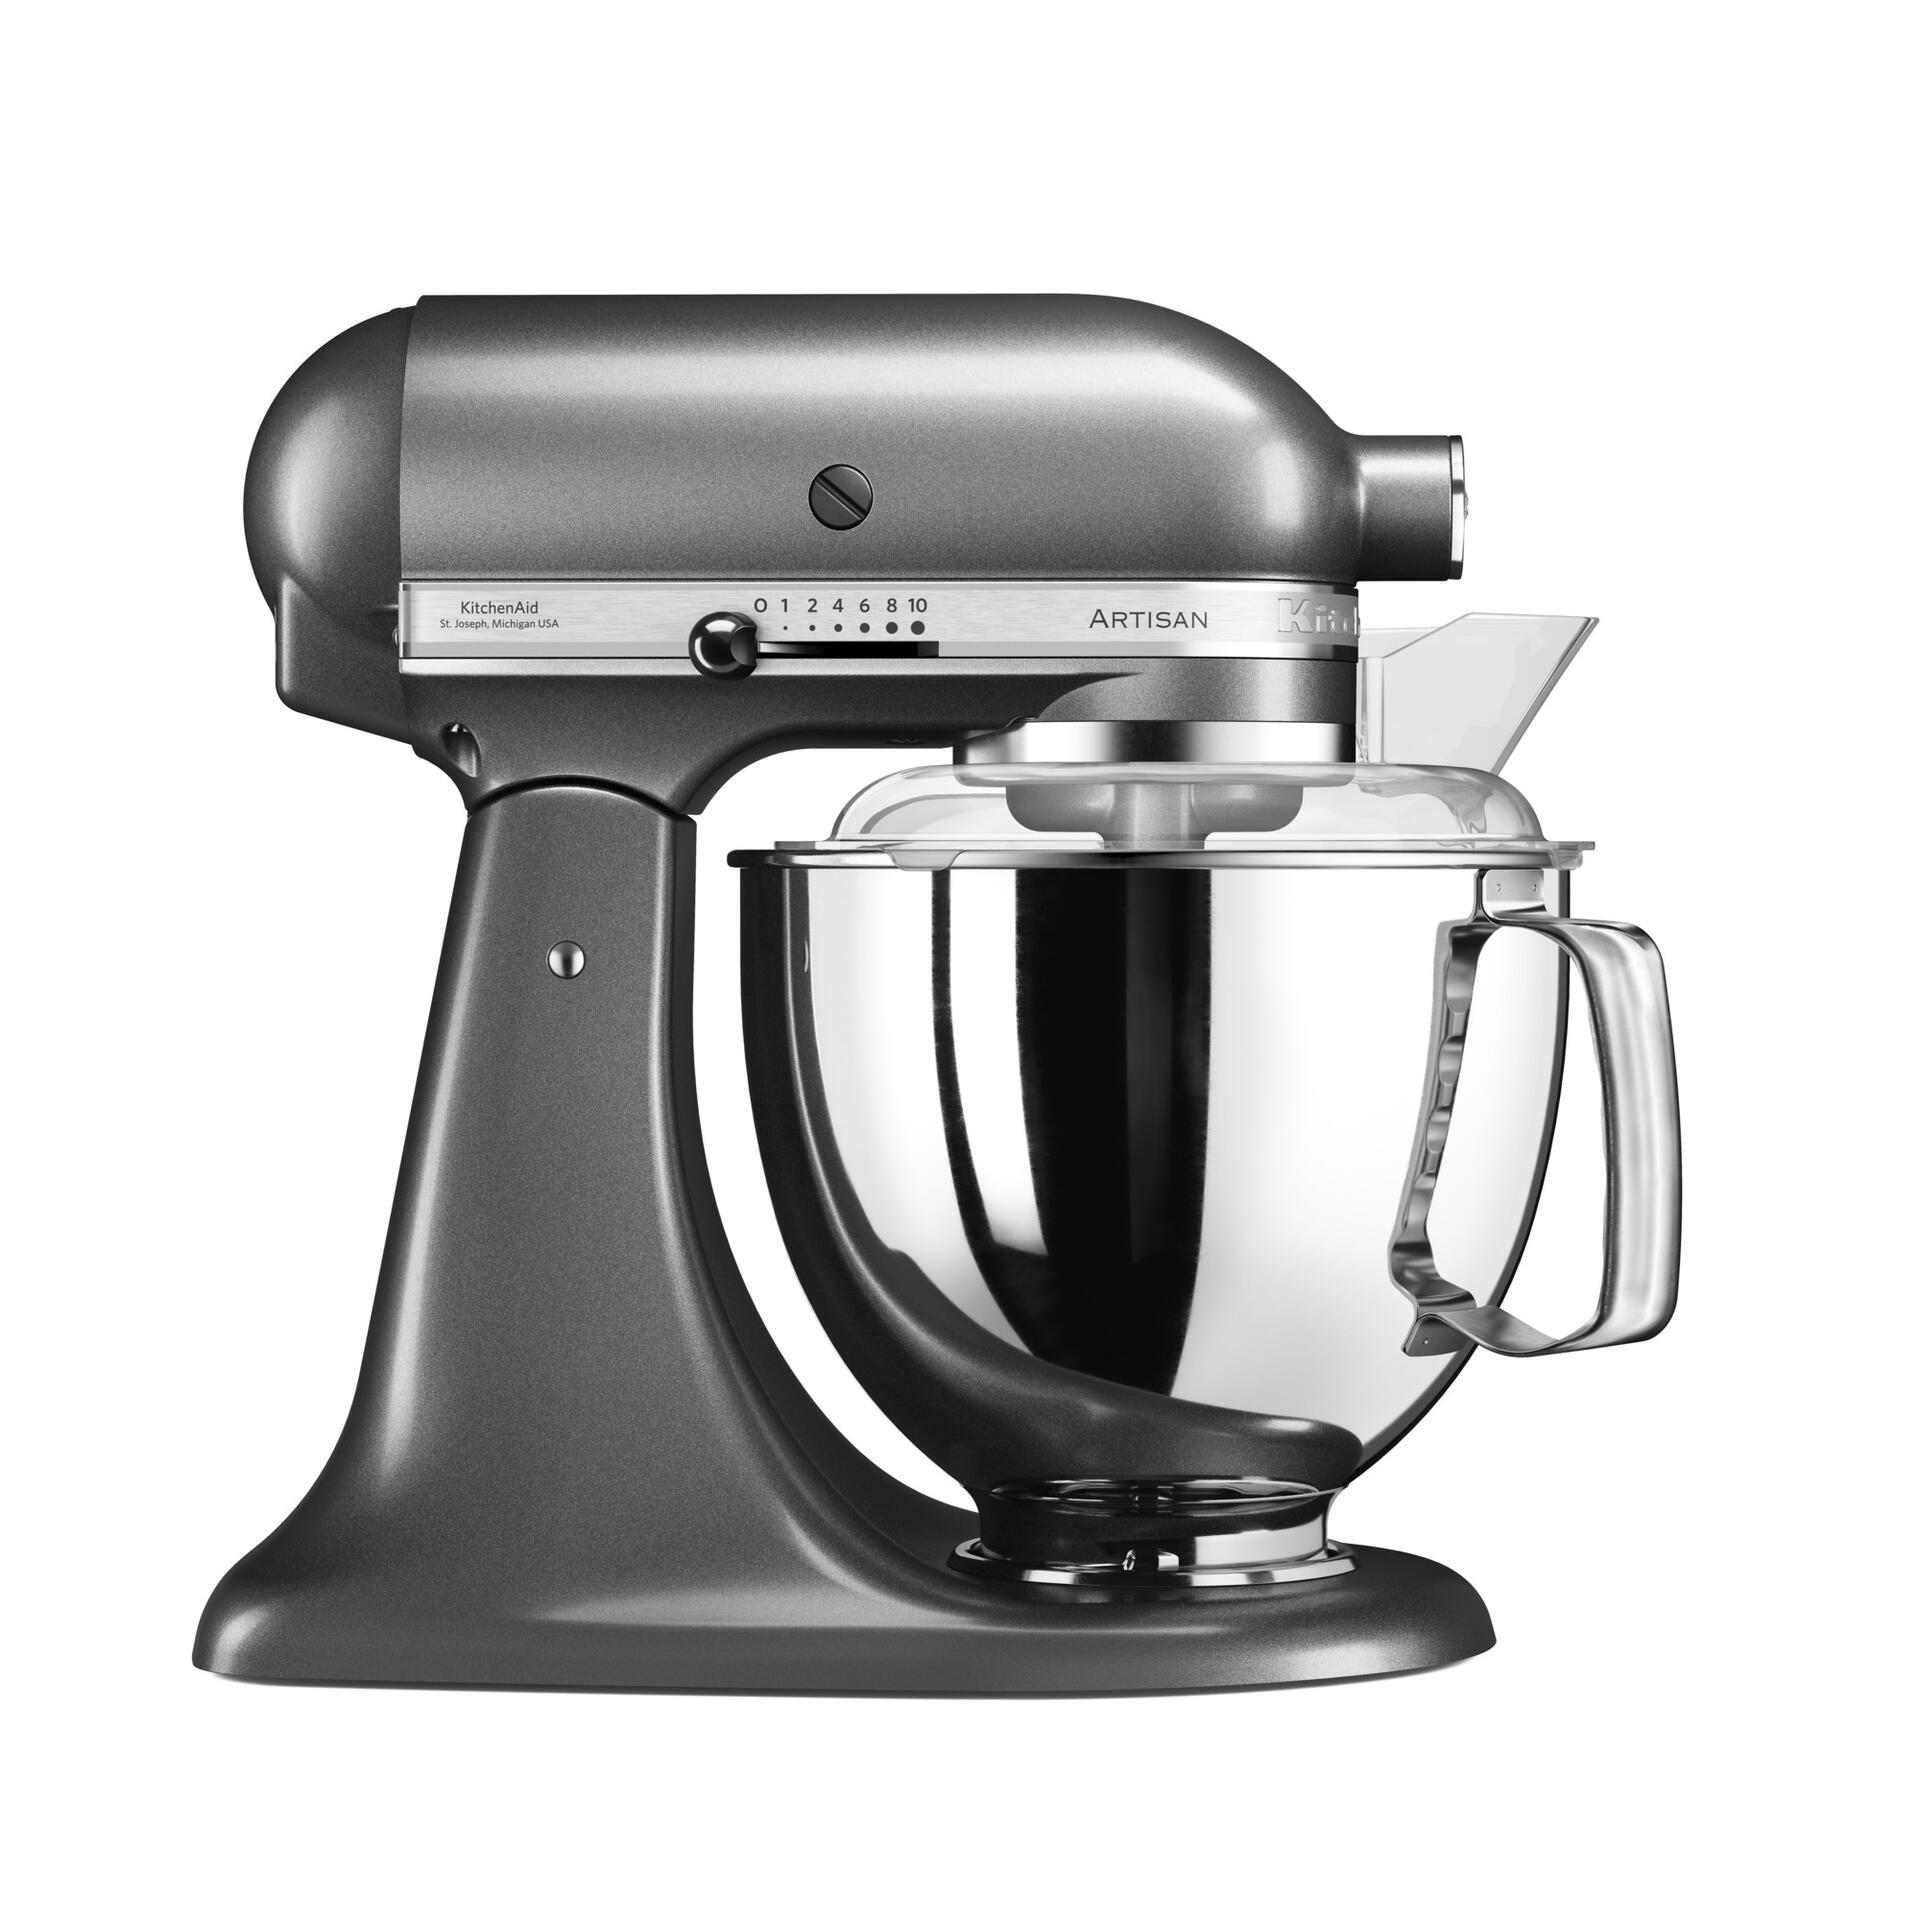 Kitchenaid Küchenmaschine Medallion Silber 5KSM175PSEMS